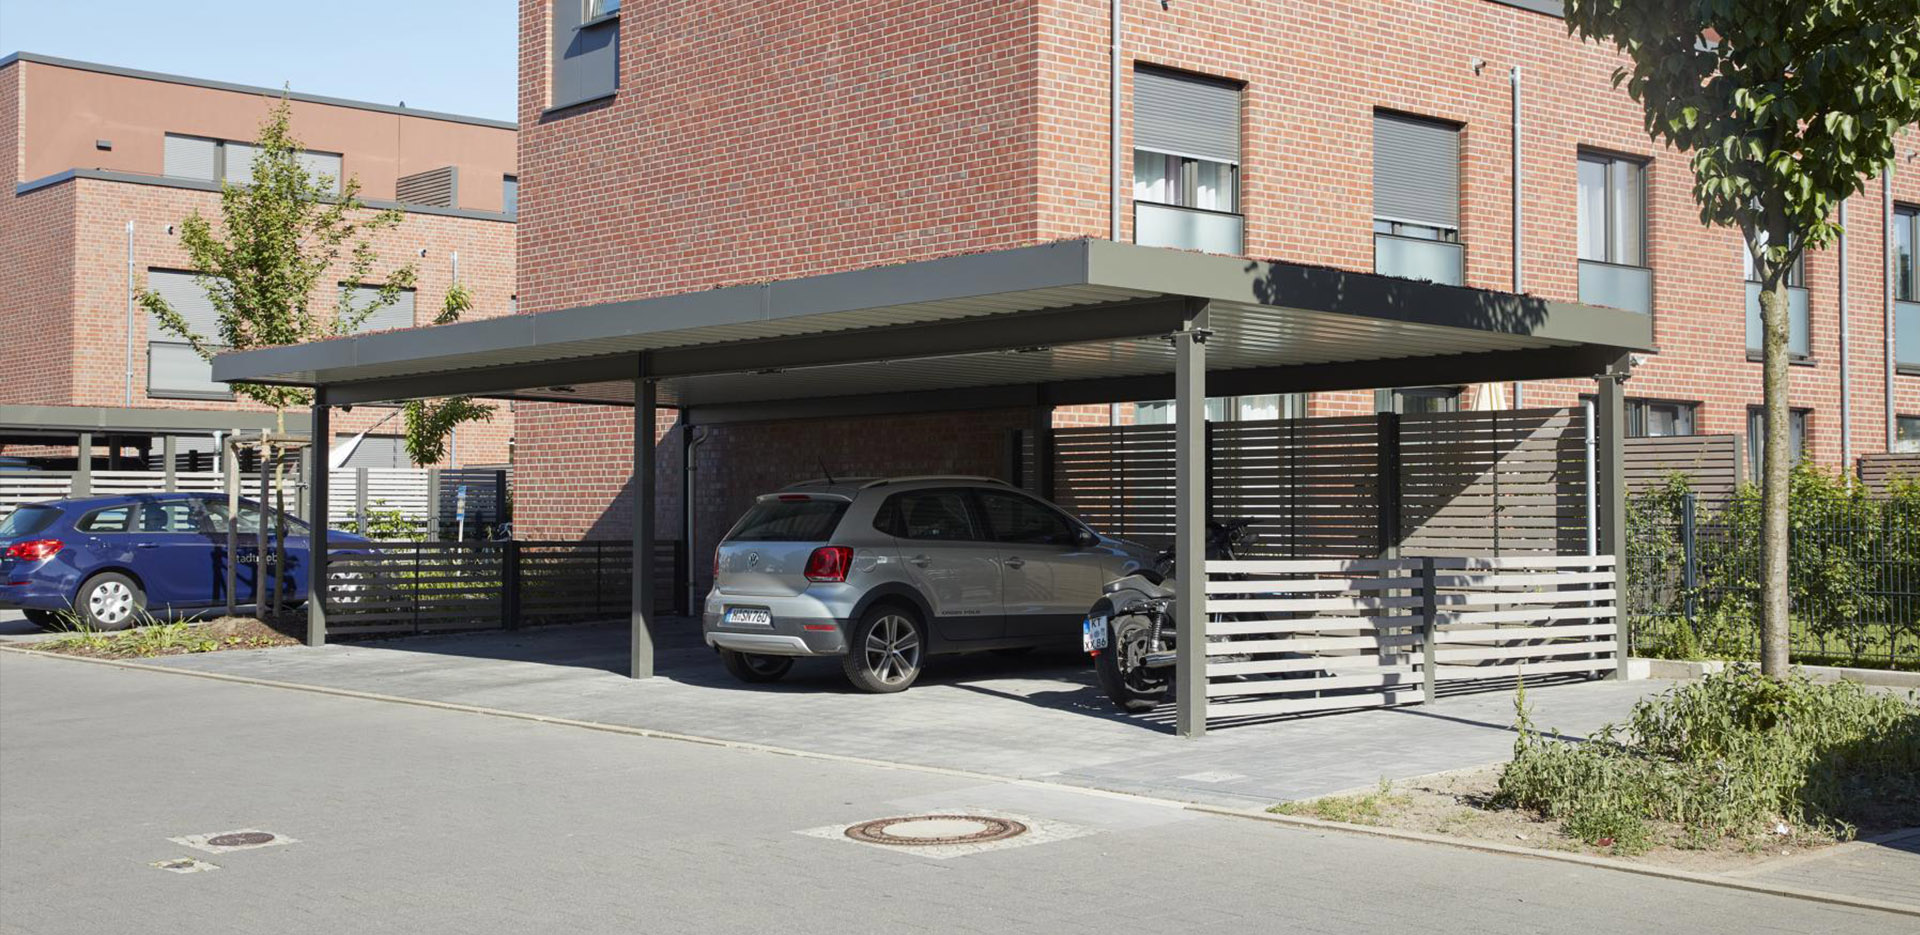 Einhausung-Carport-Metall-Hannover References